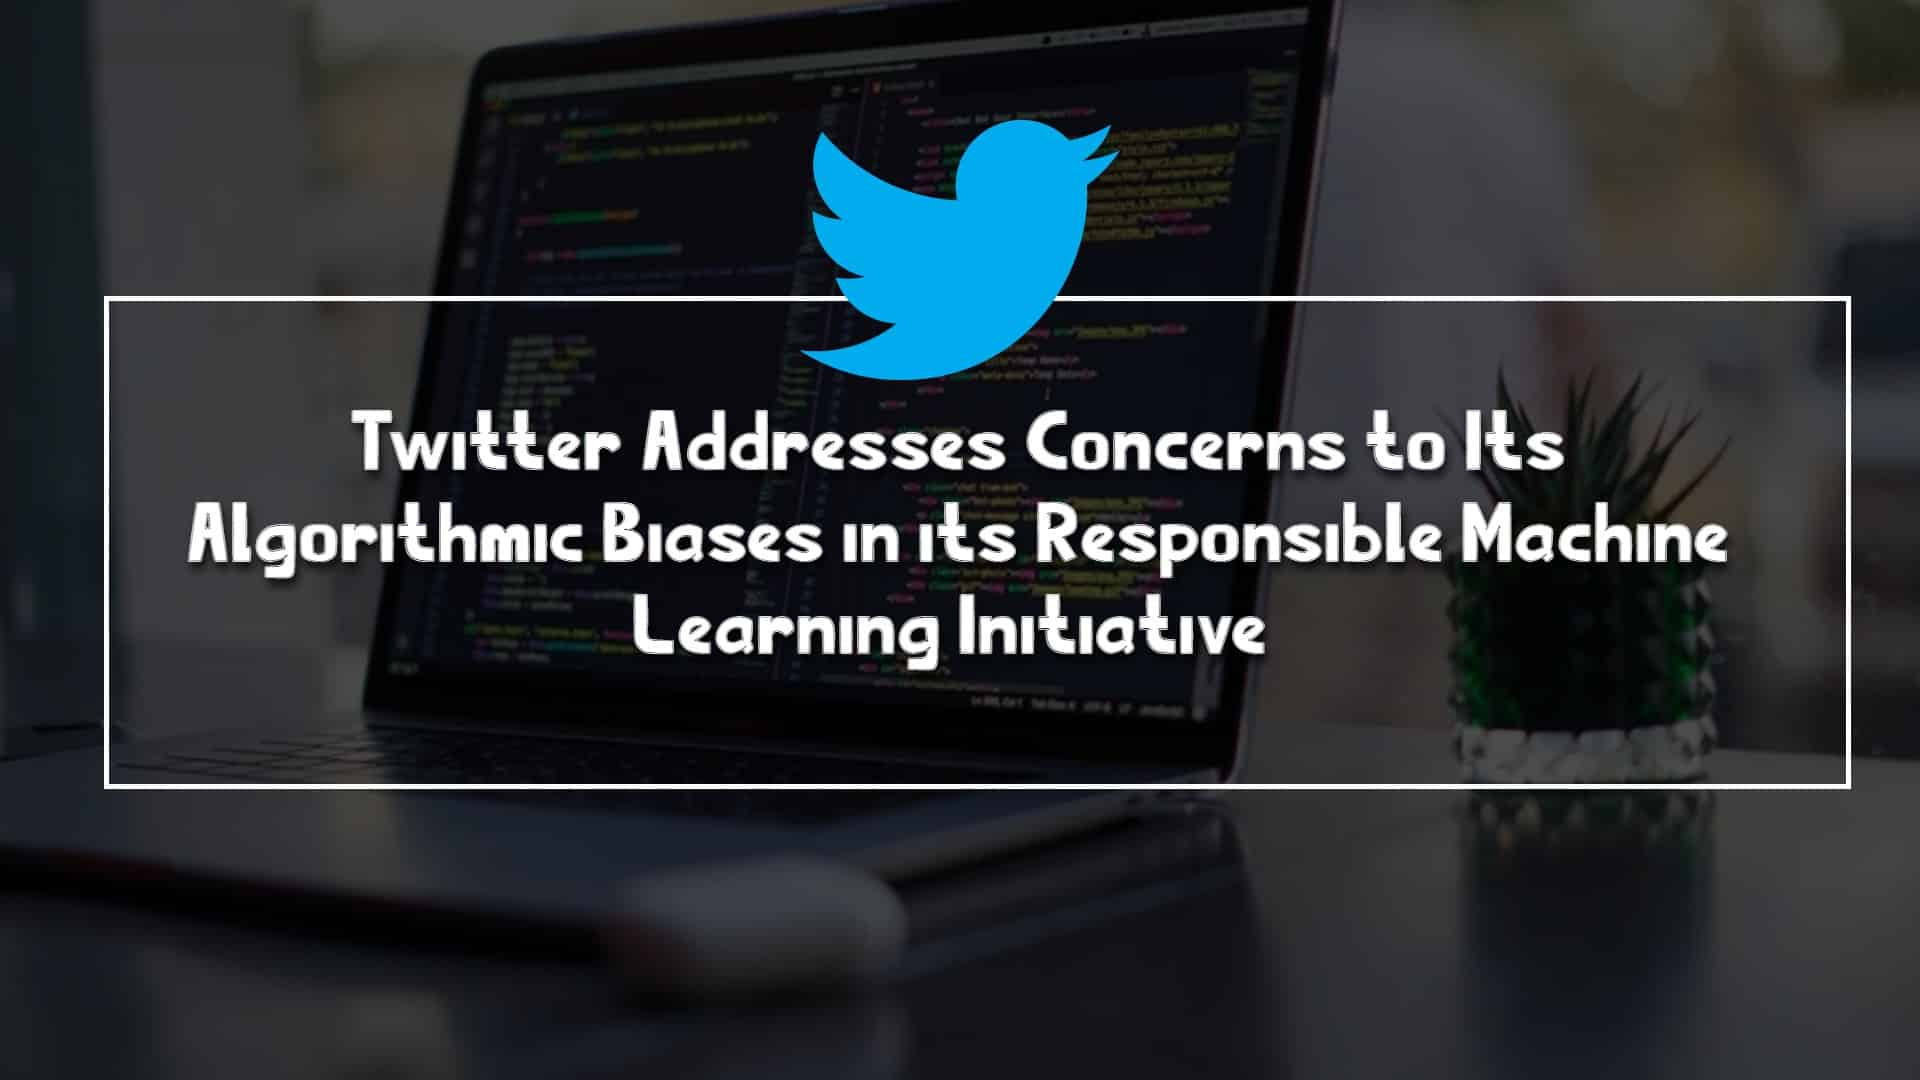 Twitter Addresses Concerns to Its Algorithmic Biases in its Responsible Machine Learning Initiative